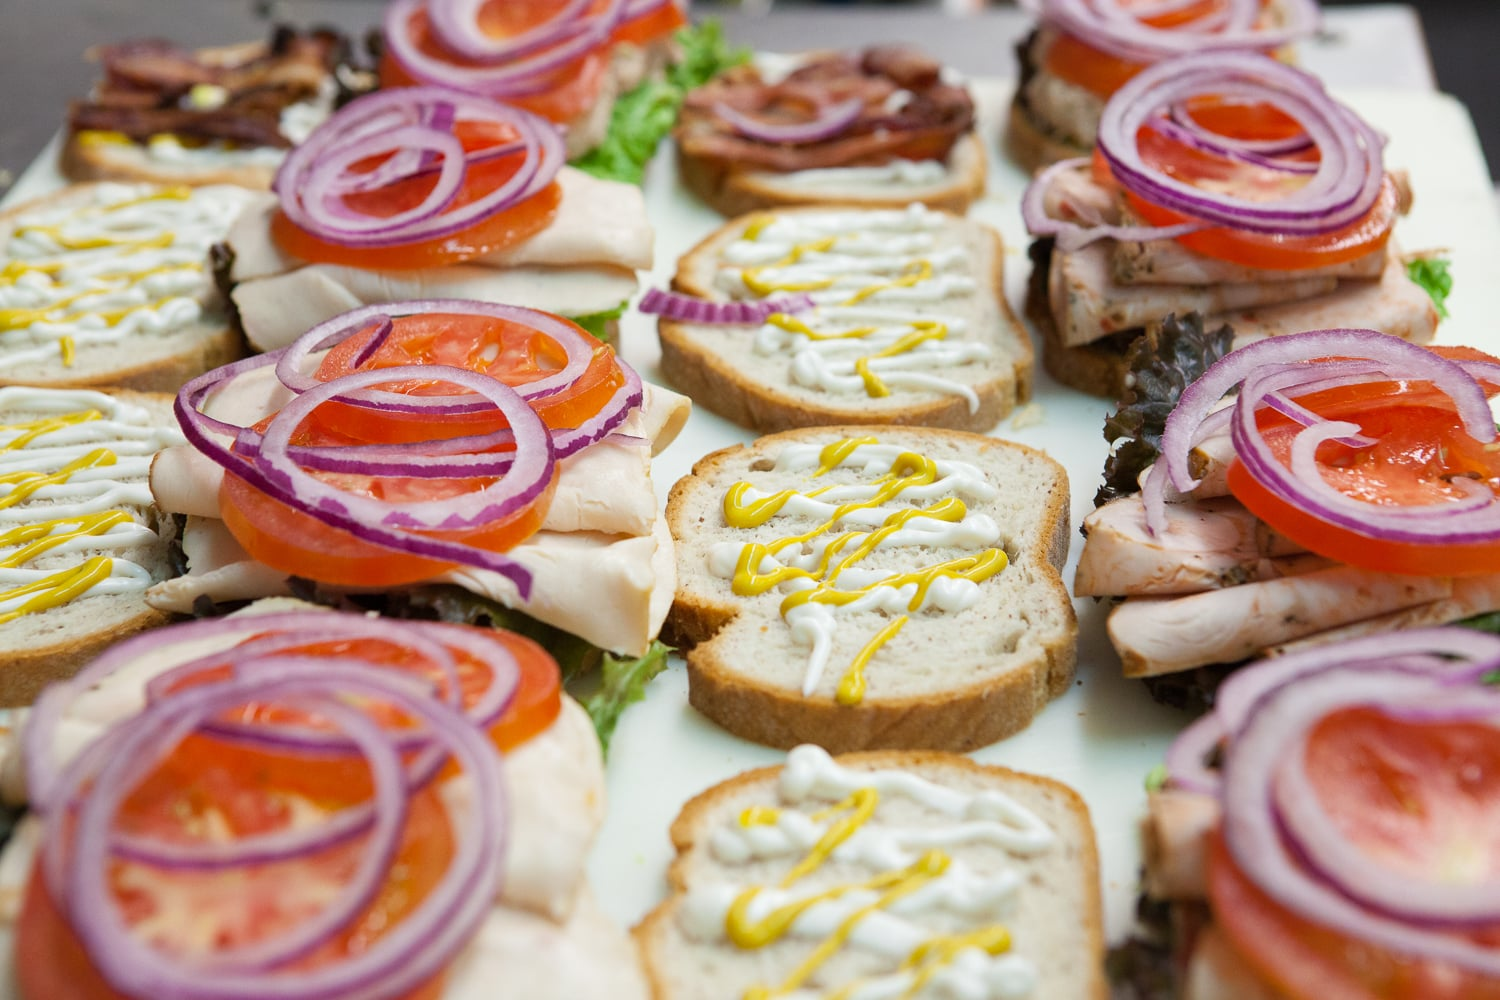 premium-organic-sandwiches-prepared-by-mana-foods-deli.jpg